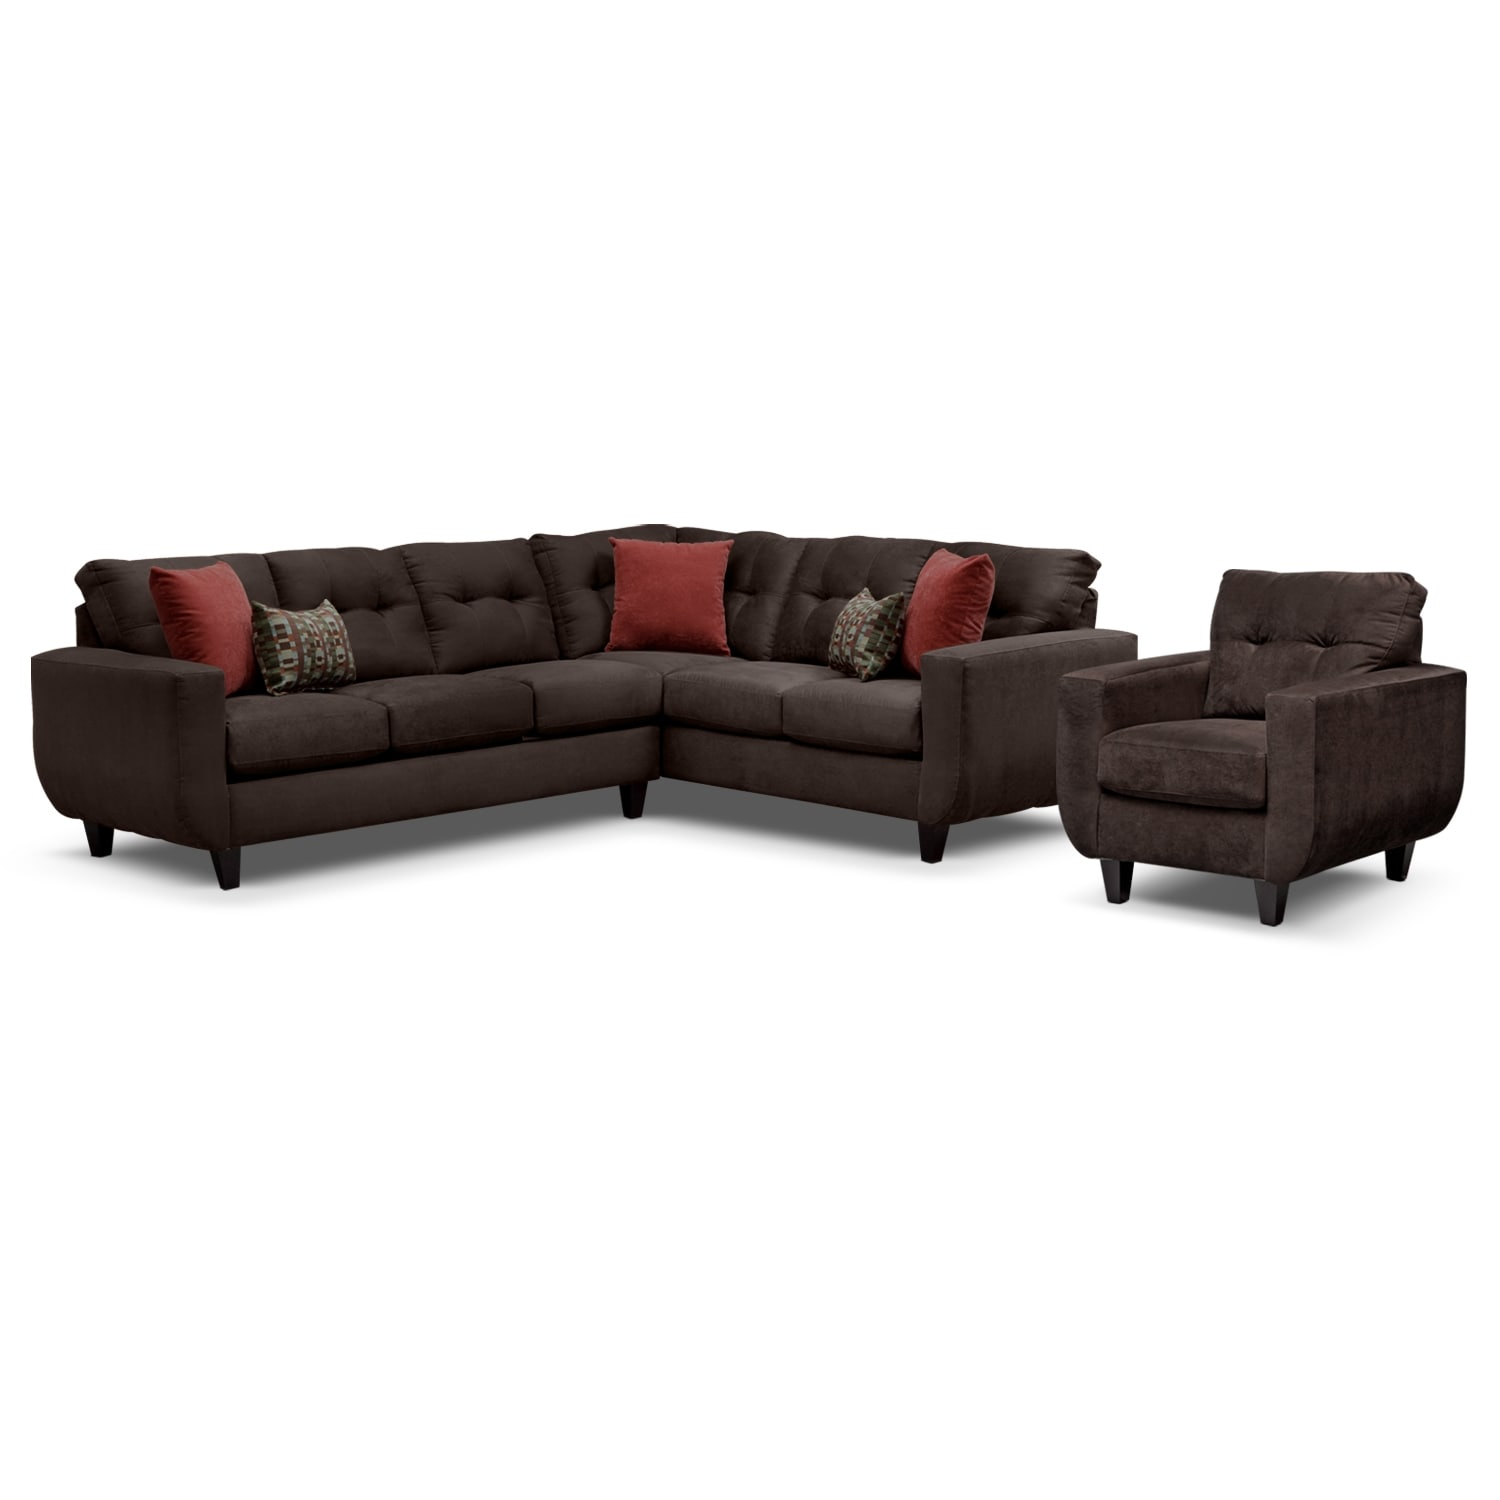 Living Room Furniture - West Village 2-Piece Sectional and Chair Set - Chocolate